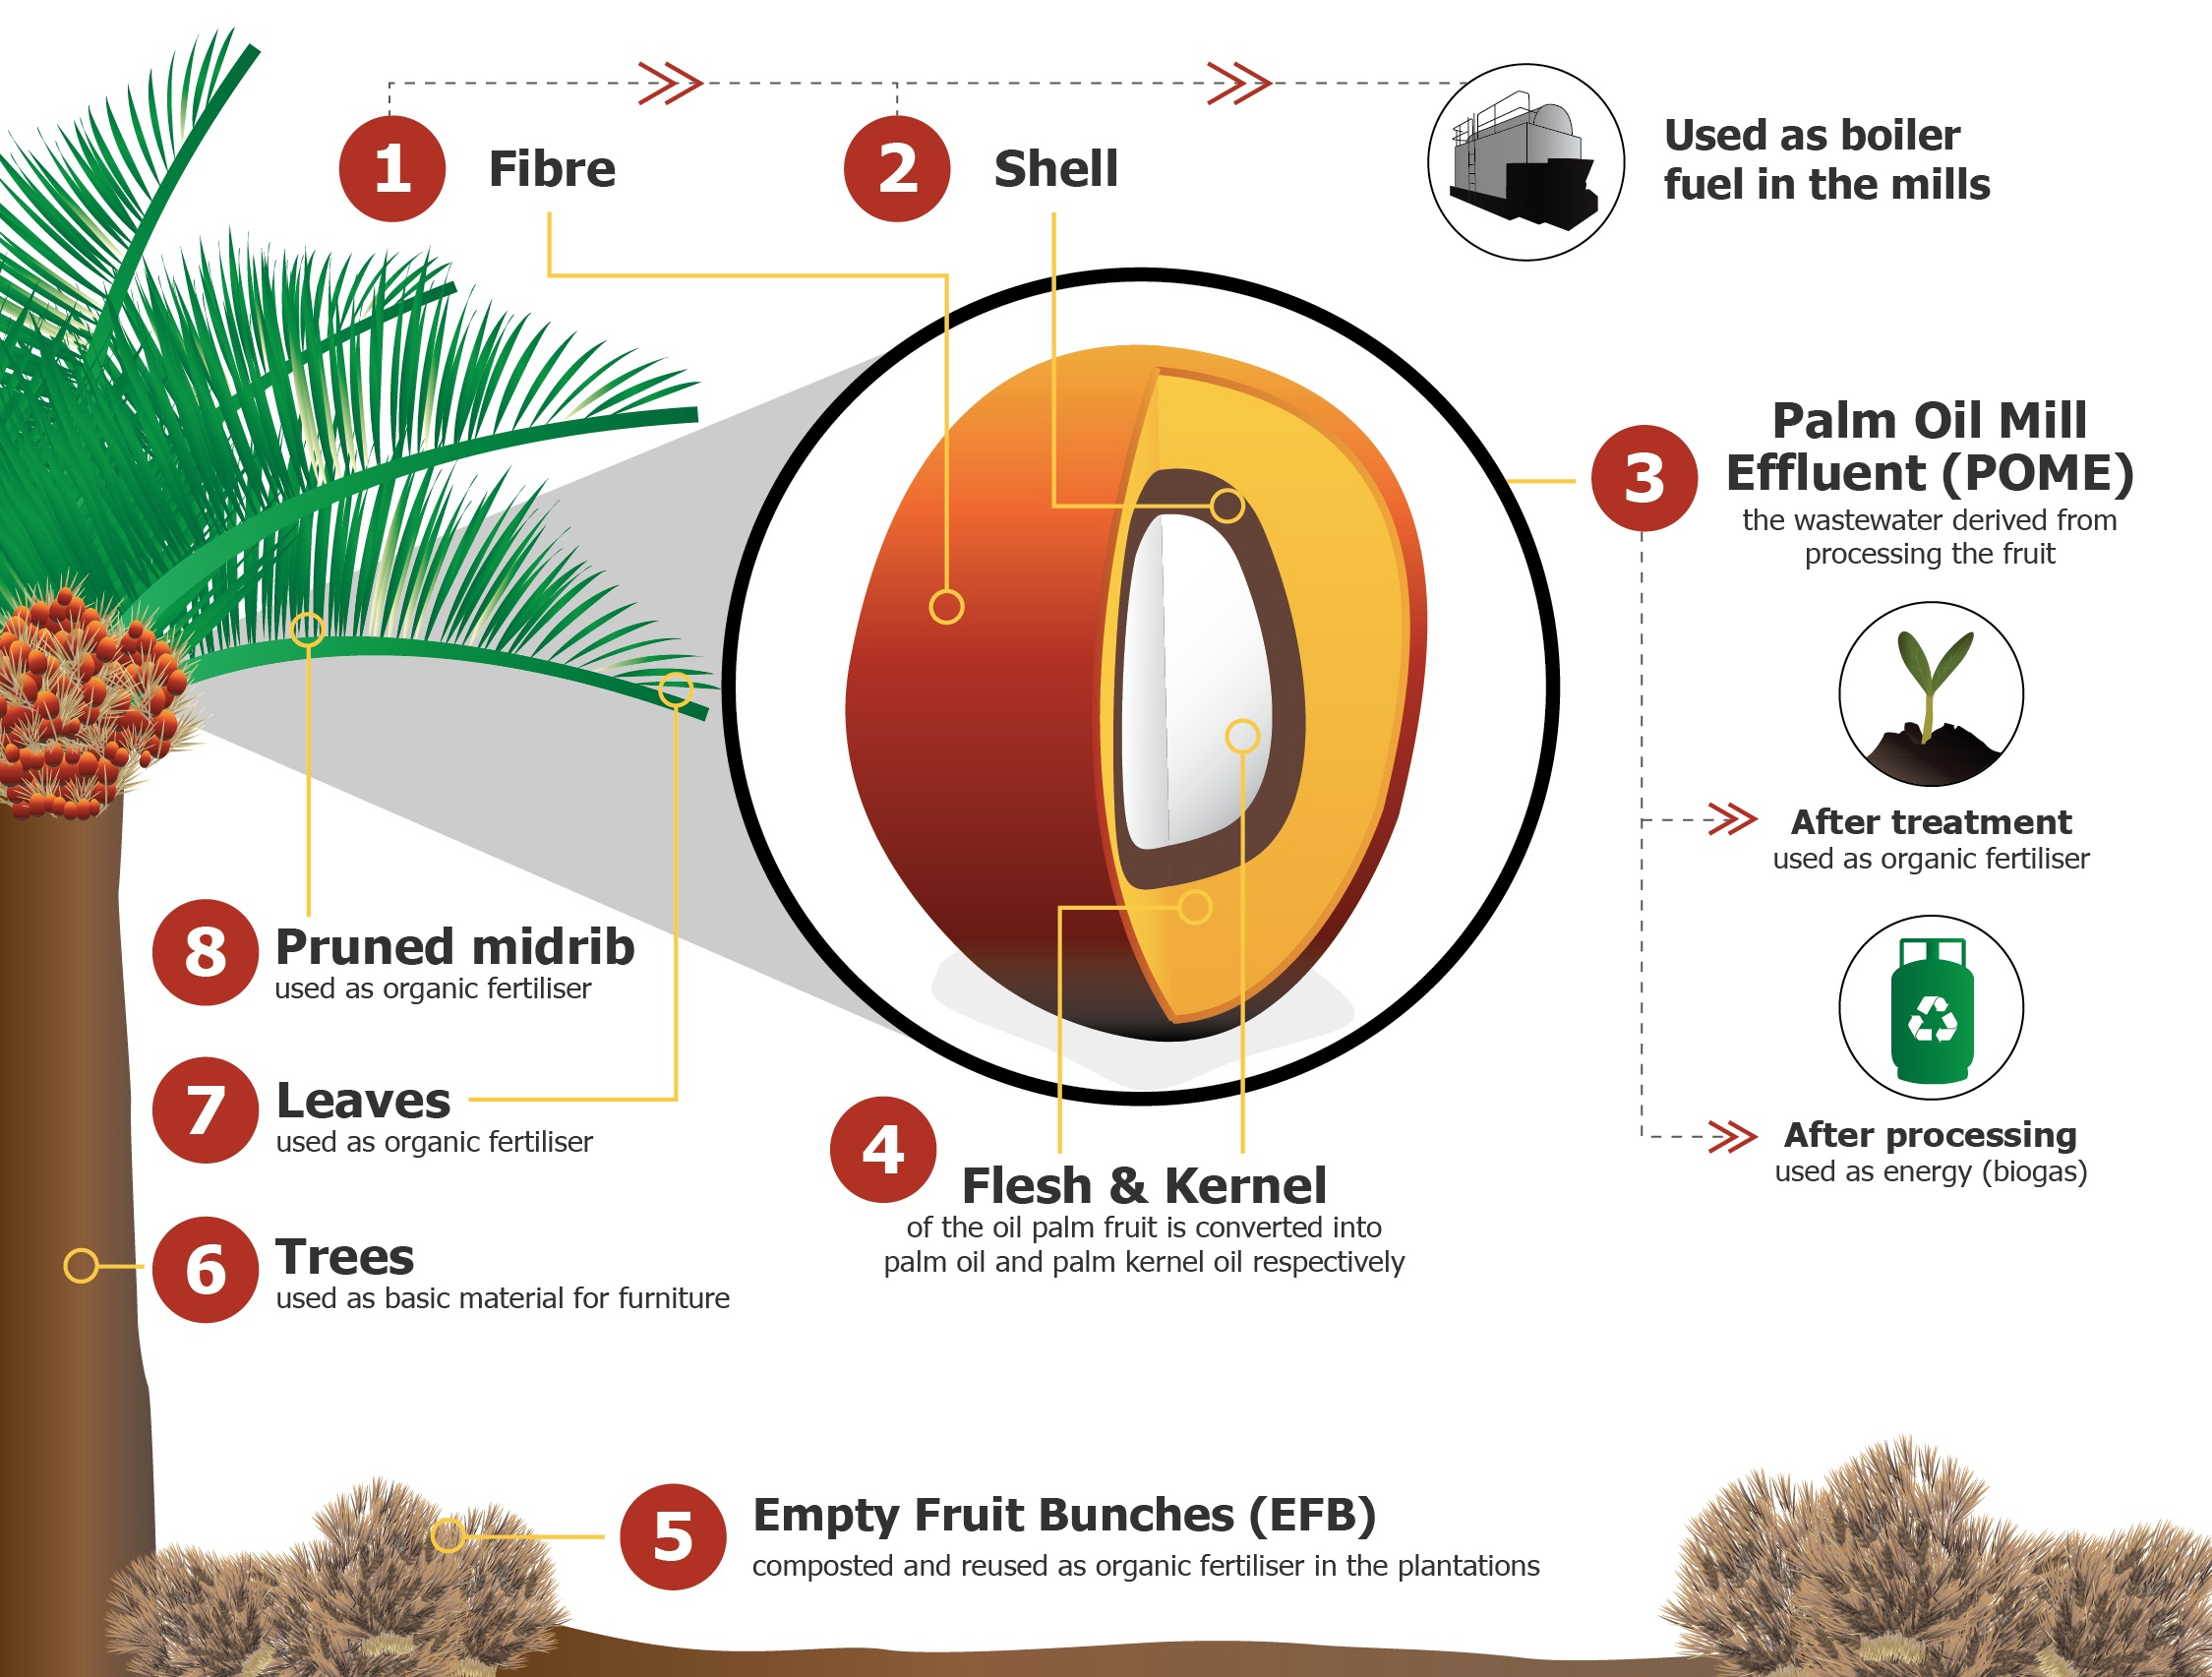 Zero Waste Of The Palm Oil Fruit Golden Agri Resources